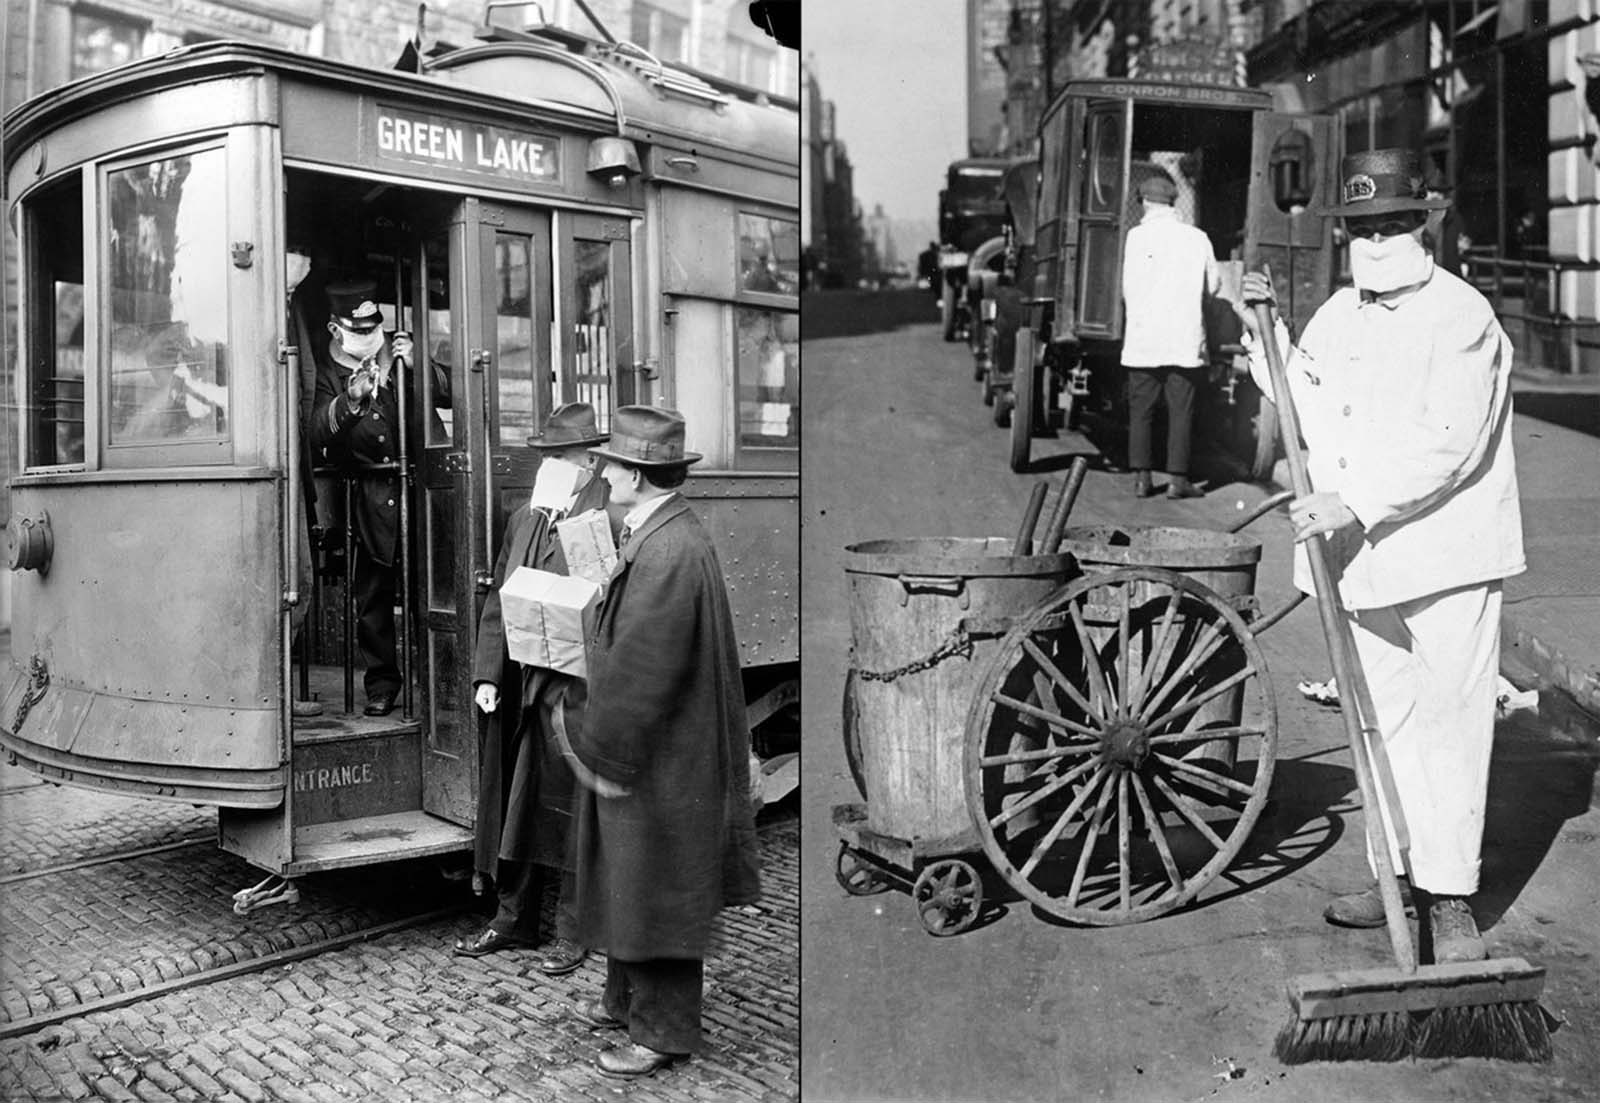 Left: A conductor checks to see if potential passengers are wearing masks in Seattle, Washington. During the influenza epidemic, masks were required for all passengers. Right: A worker wears a mask to prevent the spread of influenza. The New York Health Board admonished citizens to wear masks to check the spread of the influenza epidemic: